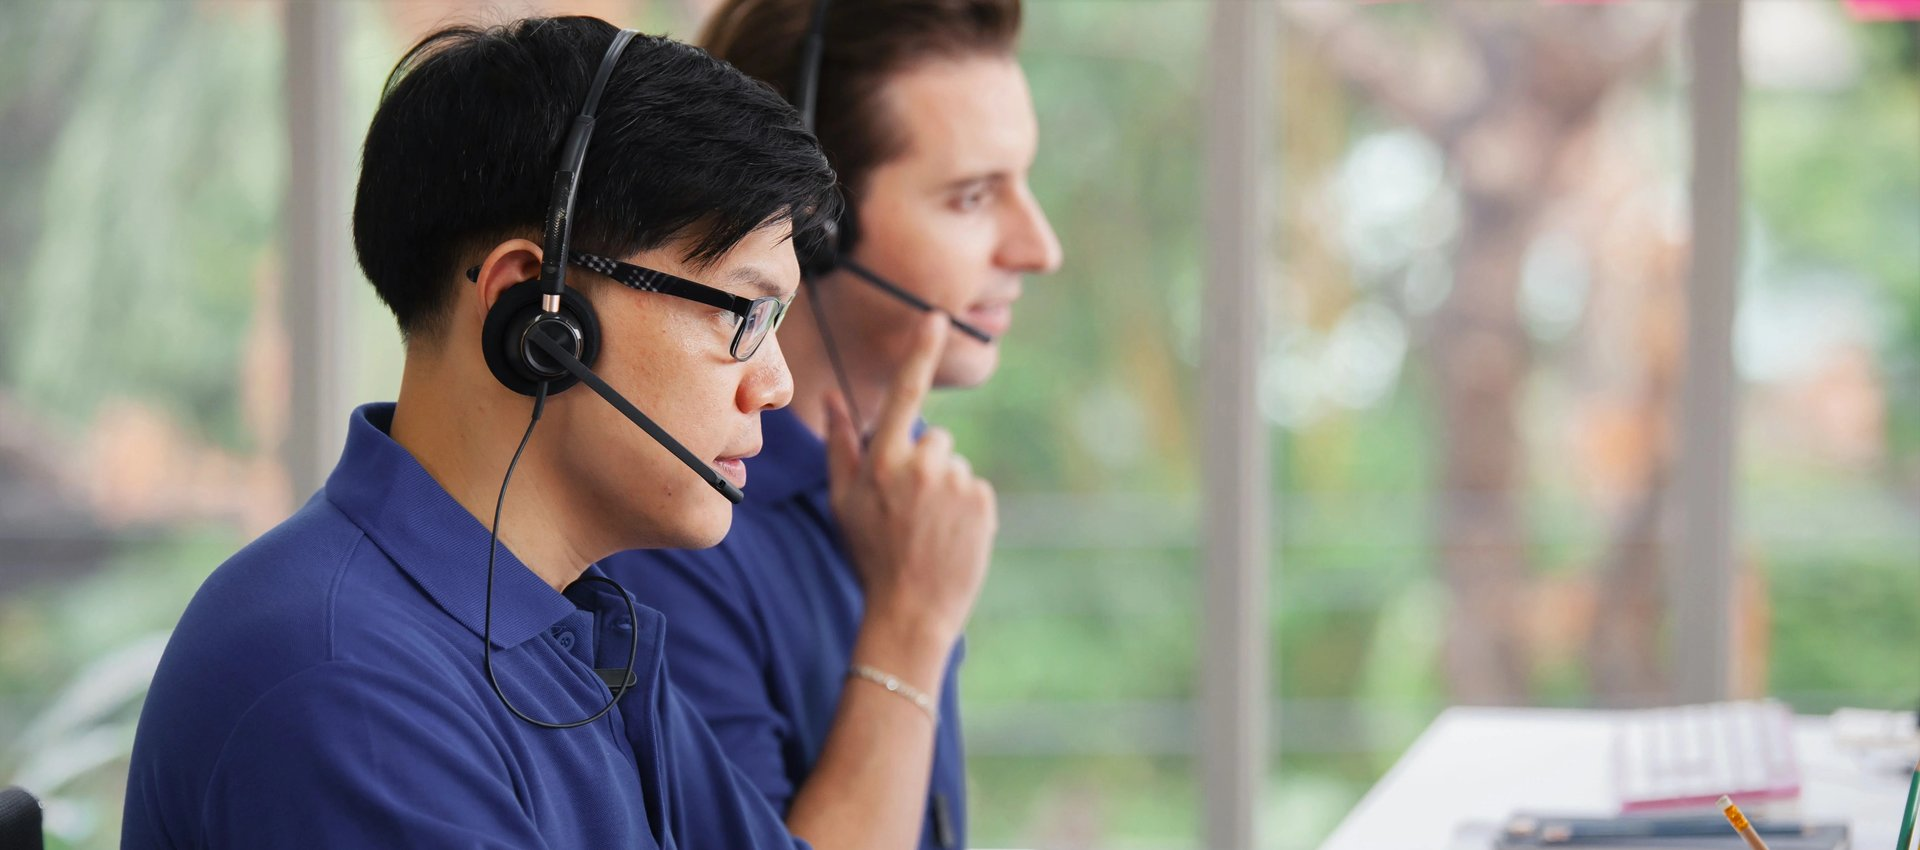 Managed IT Services: Objective Look at Its Pros and Cons